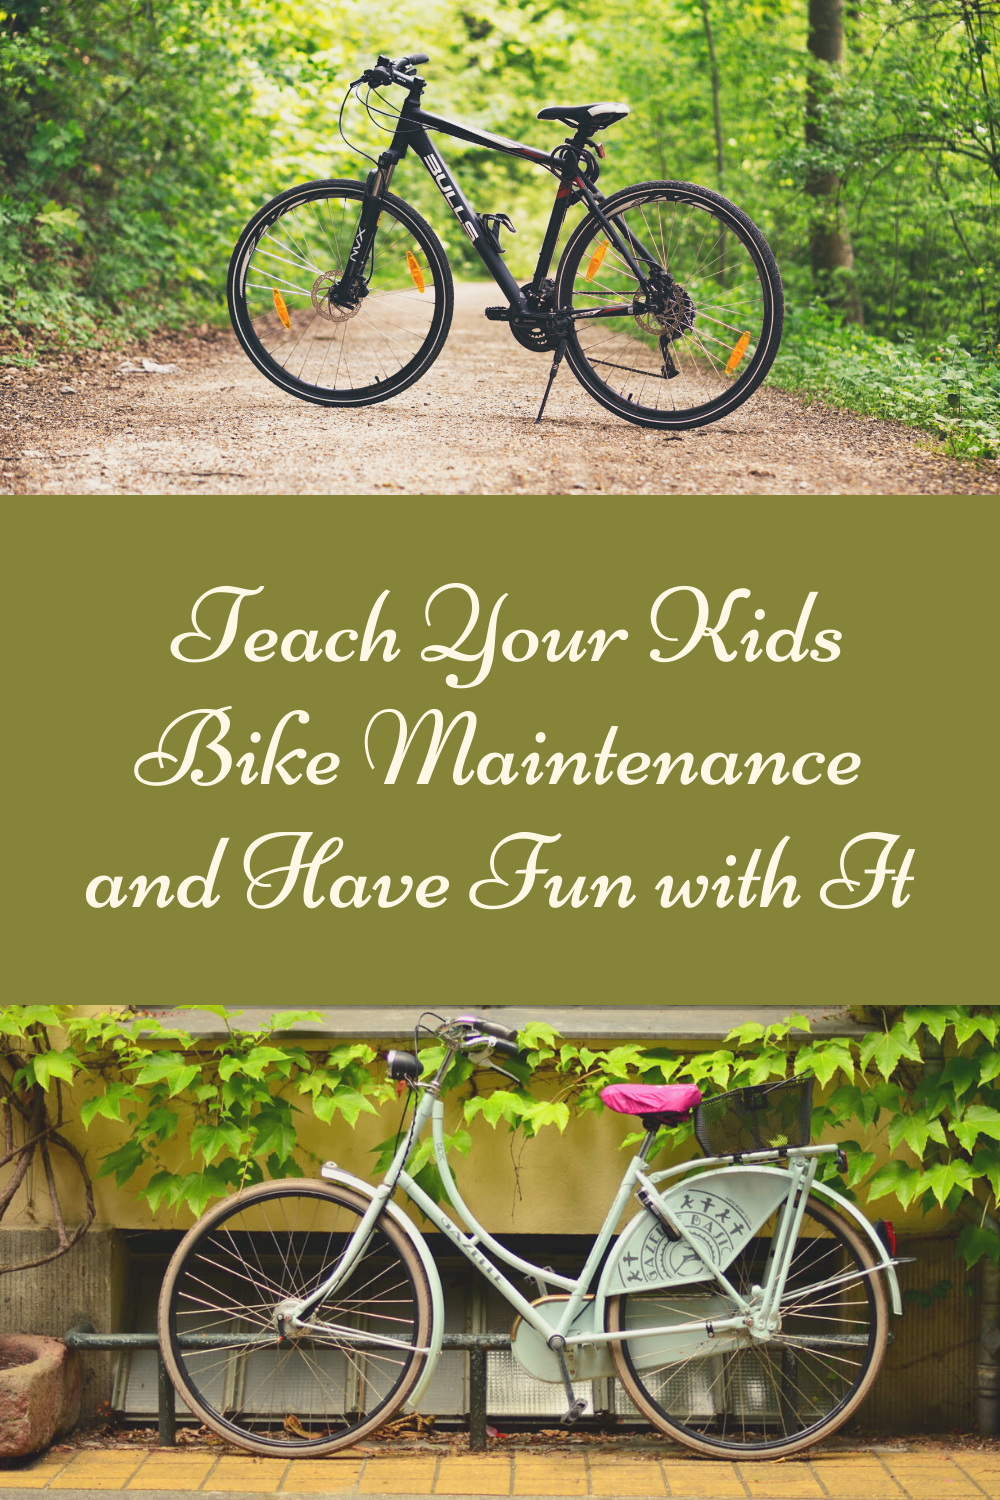 Teach Your Kids Bike Maintenance and Have Fun with It. It's important to keep your child educated about maintaining their bike